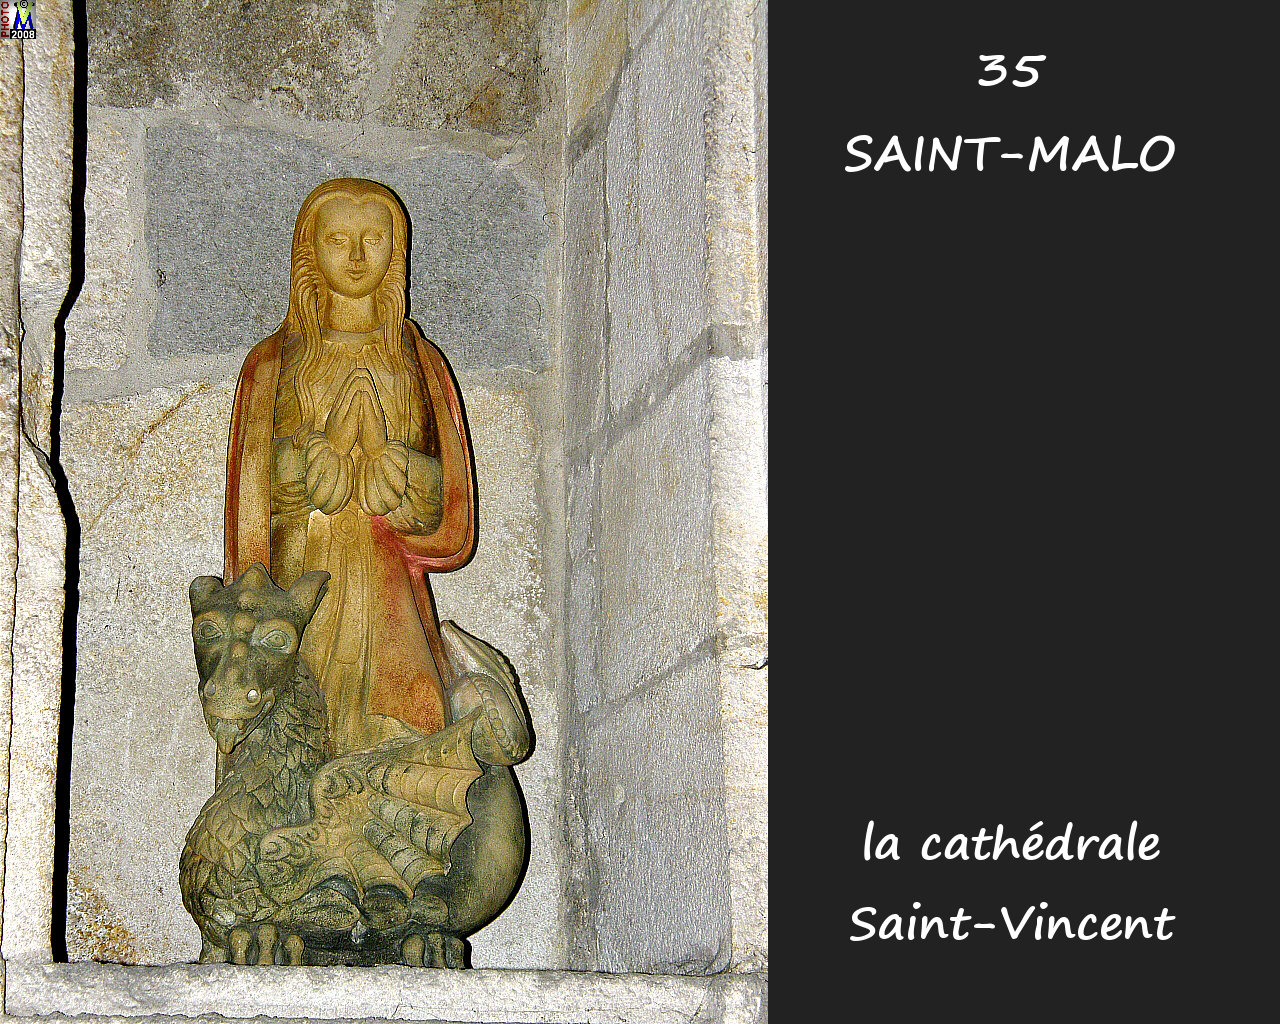 35StMALO_cathedrale_260.jpg